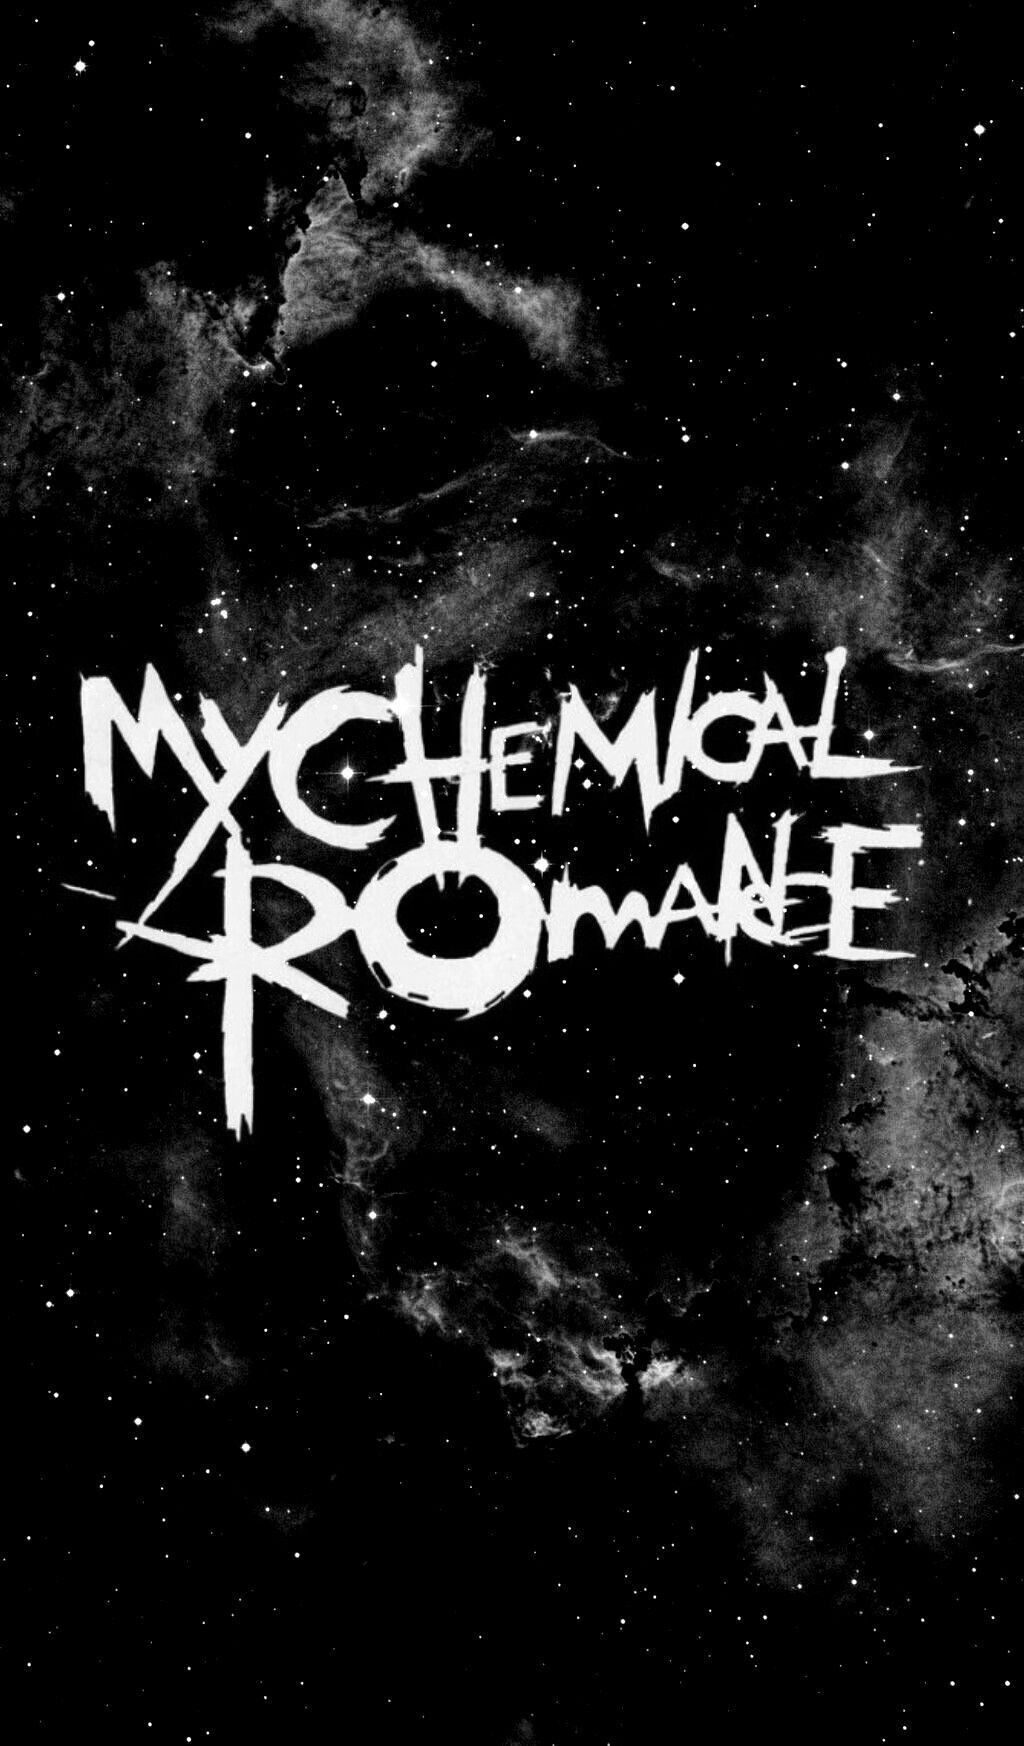 Pin By Kamie On Wallpaper My Chemical Romance Wallpaper Emo